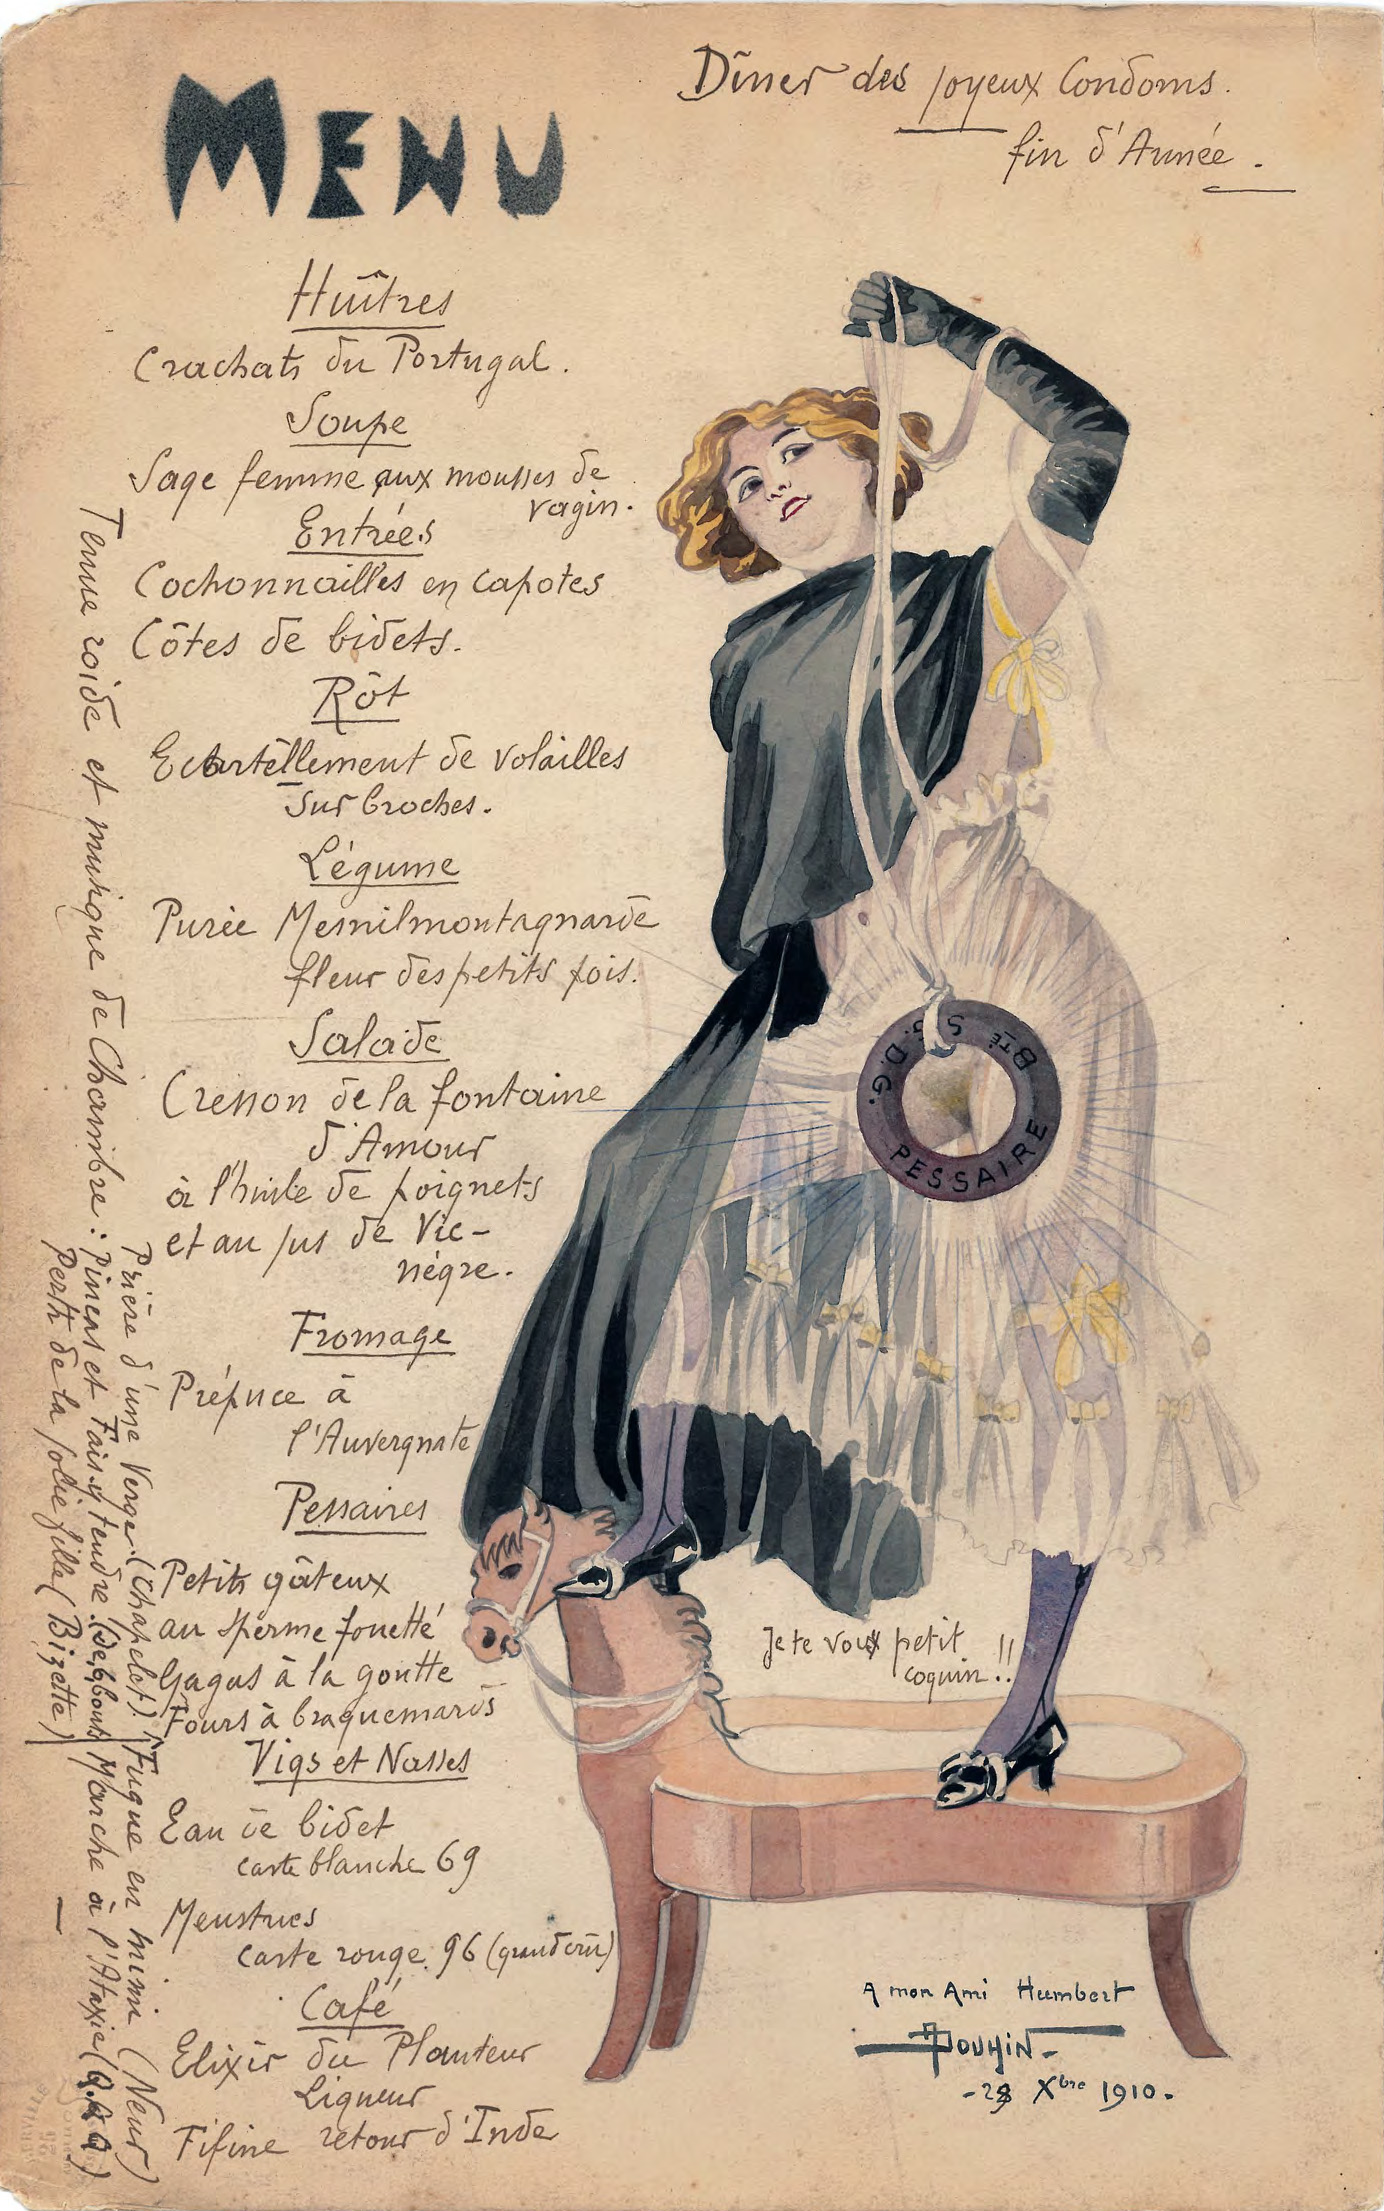 Menu drawn by André Douhin for the 'Dîner des joyeux Condoms', the New Year dinner of Eugène Humbert in 1911.